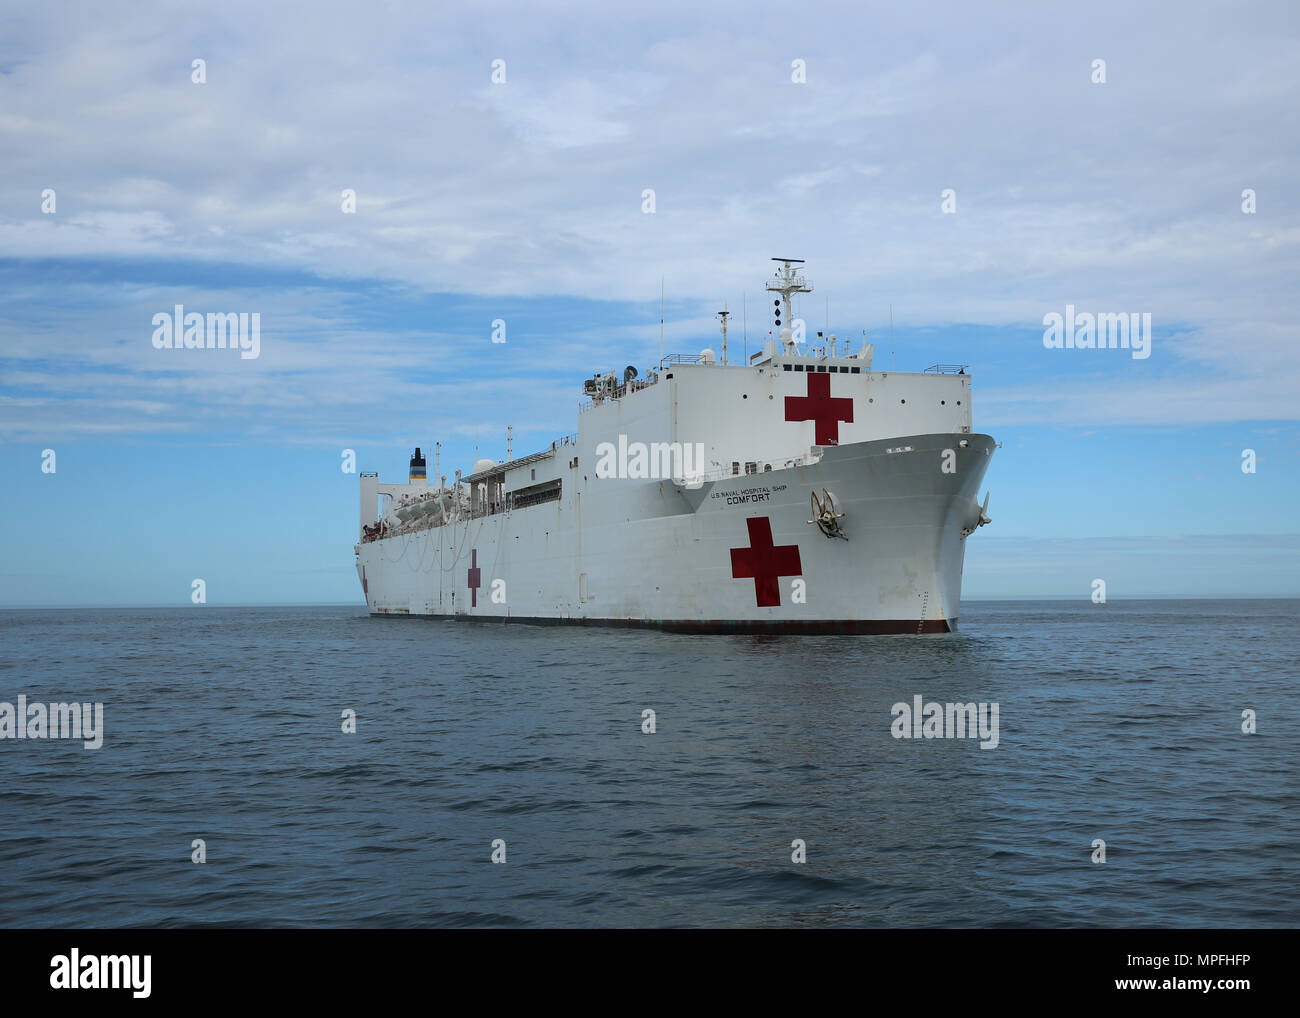 170223-N-OH262-740  ATLANTIC OCEAN (Feb. 23, 2017) The Military Sealift Command hospital ship USNS Comfort (T-AH 20) transits the Atlantic Ocean. Comfort's underway period was part of the 2017 Comfort Exercise (COMFEX). The exercise is a quarterly training battery designed to keep the medical personnel, support staff and civil service mariners who serve aboard the ship proficient in their duties. Comfort provides an afloat, mobile, acute surgical medical facility when called upon to the U.S. military, and hospital services to support U.S. disaster relief and humanitarian operations worldwide.  - Stock Image